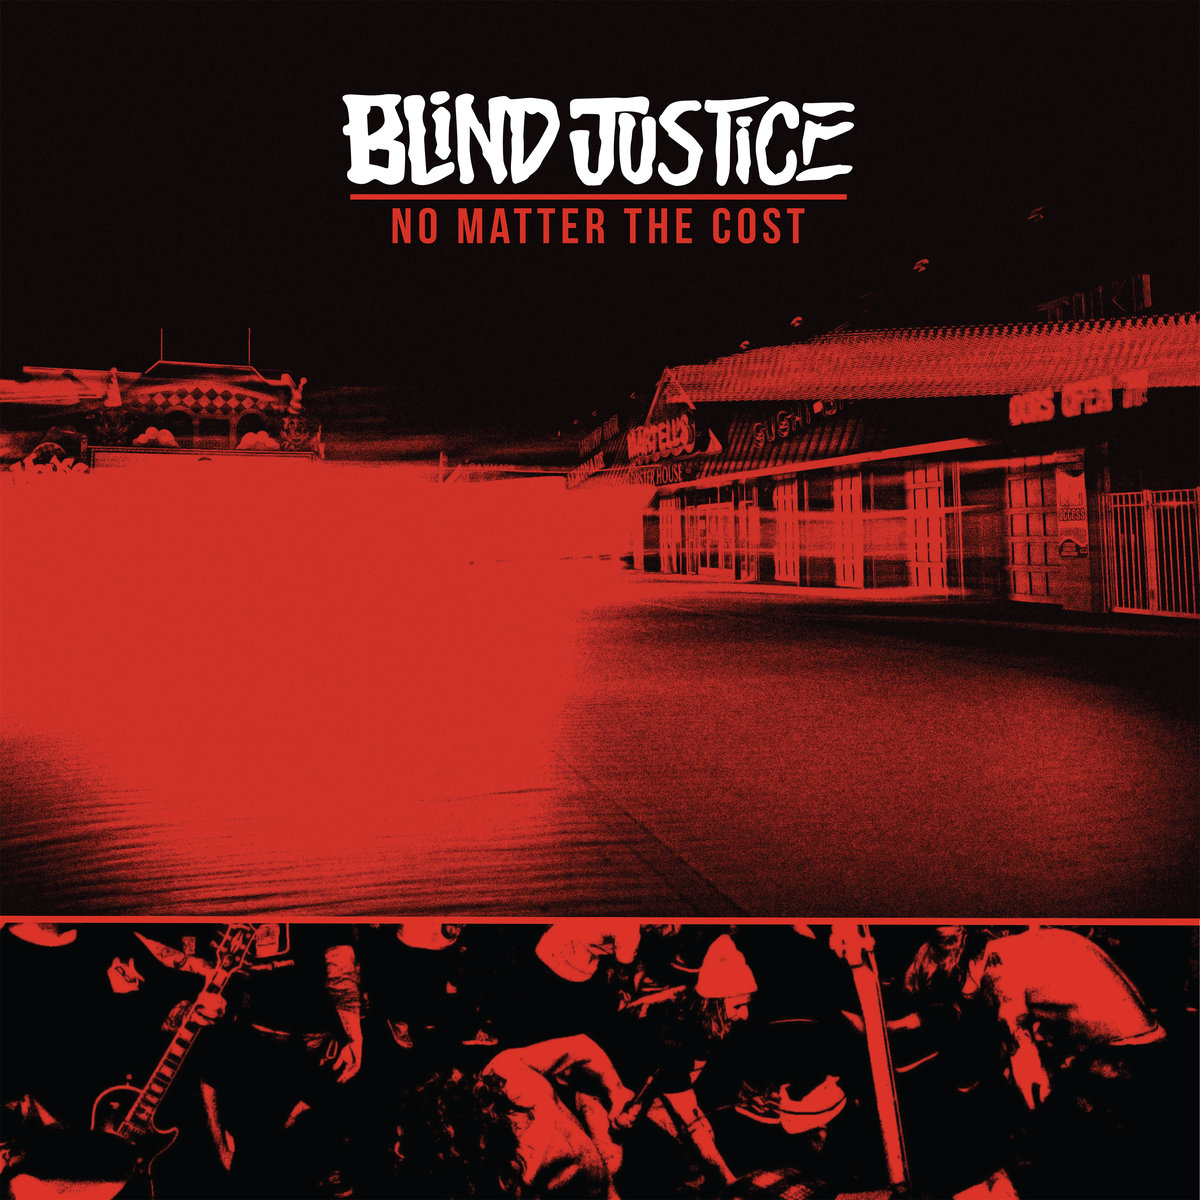 - Personal and live photograph used for BLIND JUSTICE's second studio LP 'No Matter The Cost'.